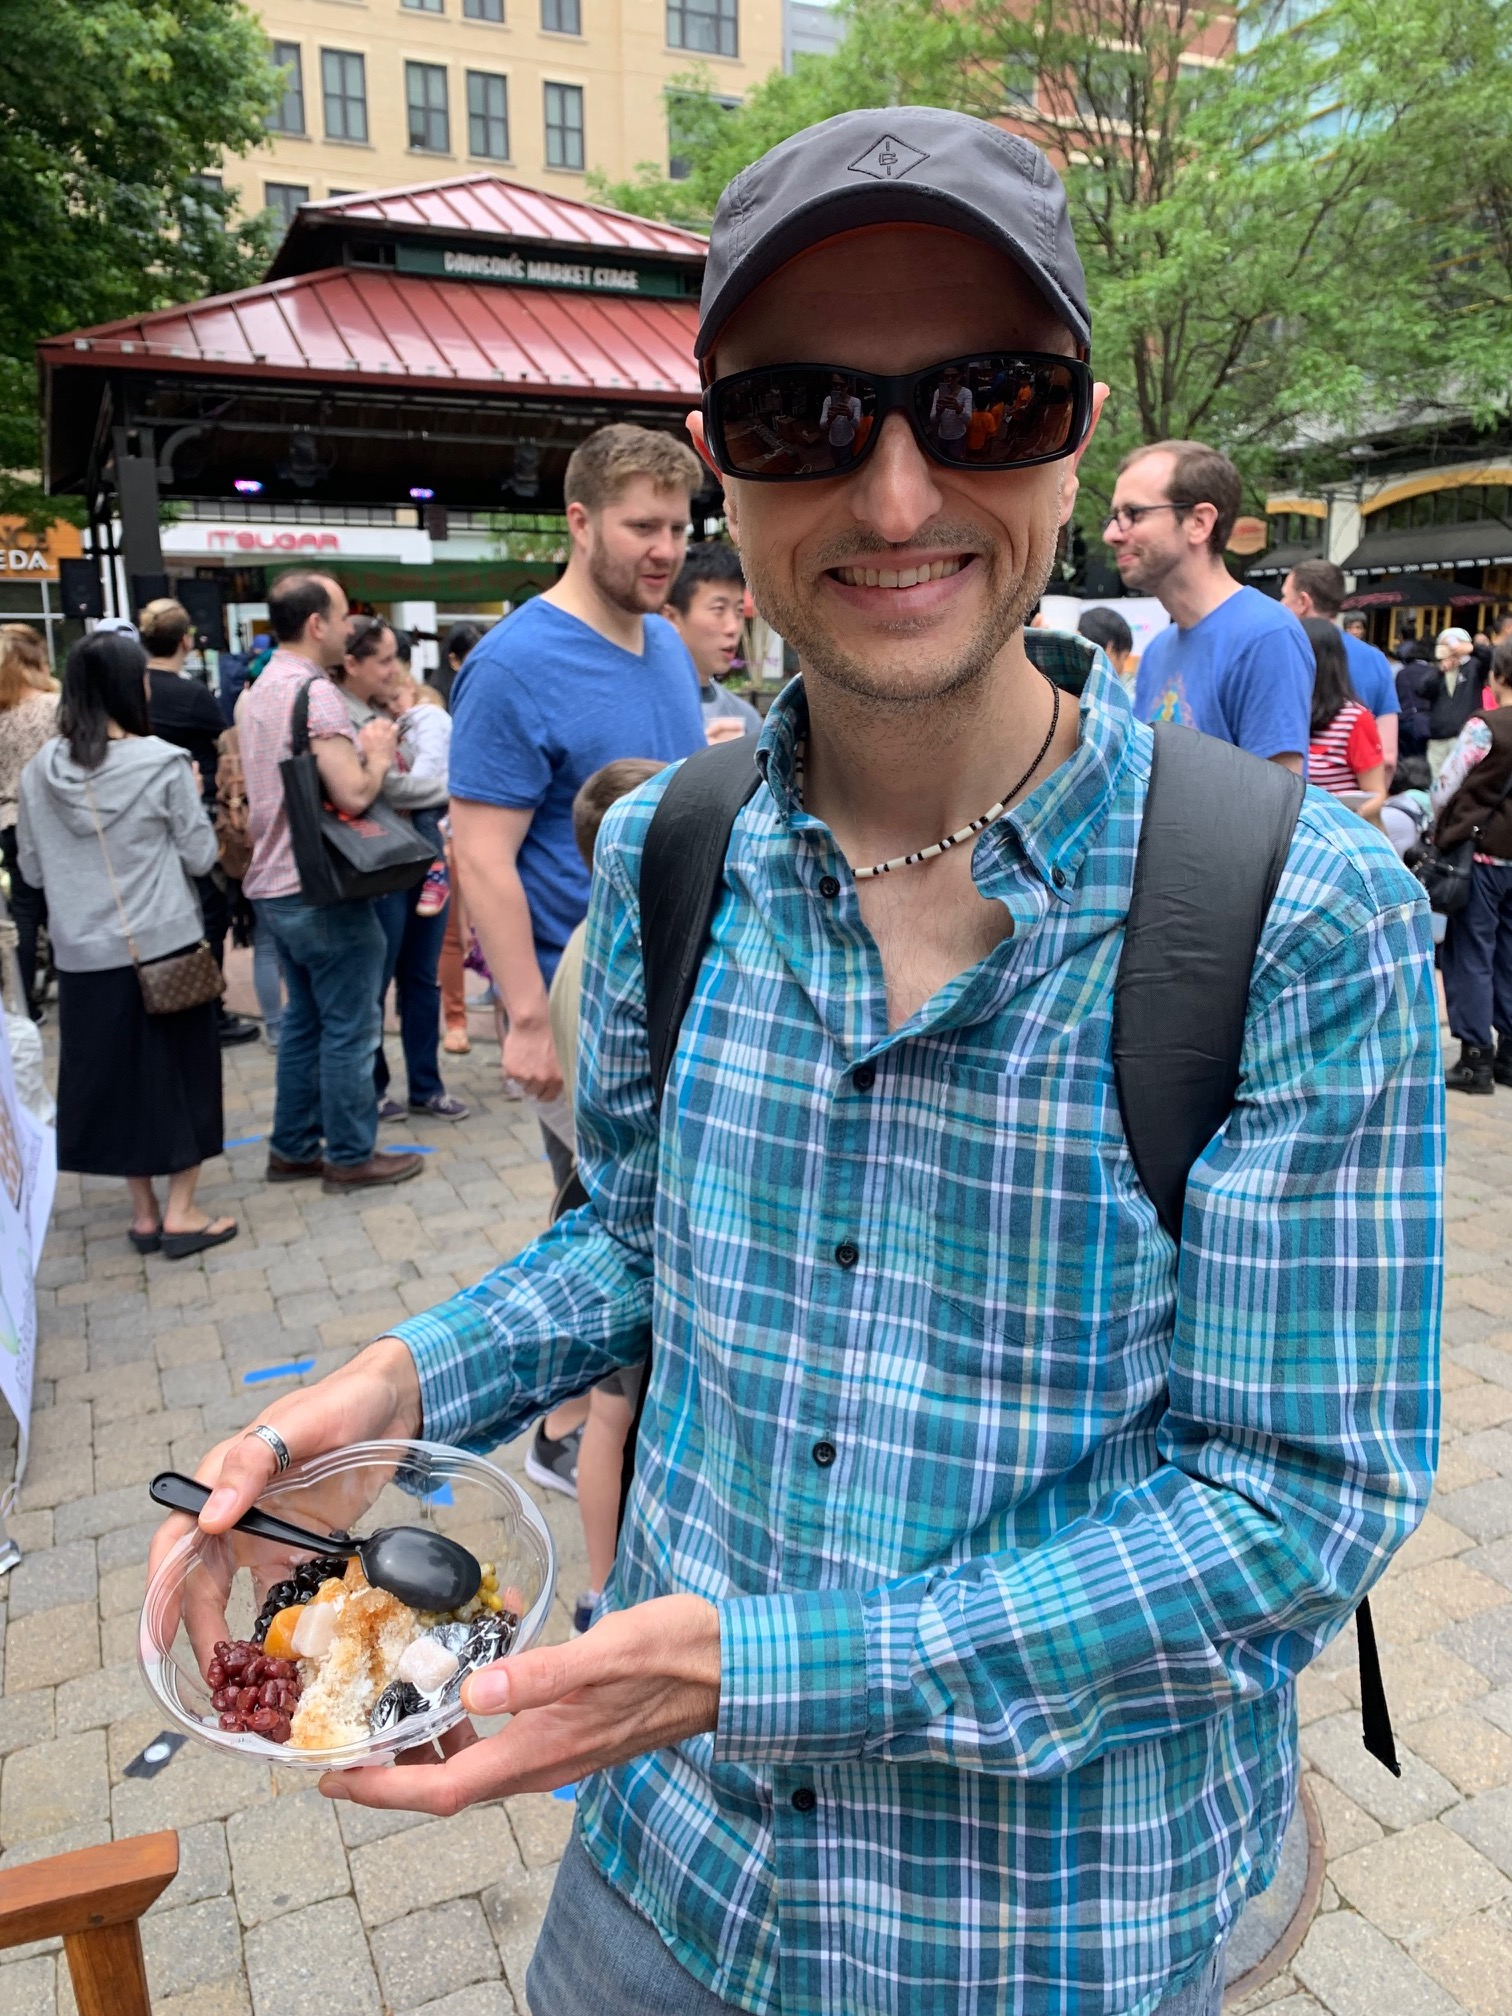 The author holding a bowl of frozen dessert (containing beans, taro, fruit and ice) at the Taiwan Bubble Tea Festival in Rockville, Maryland. The festival was May 11, 2019.